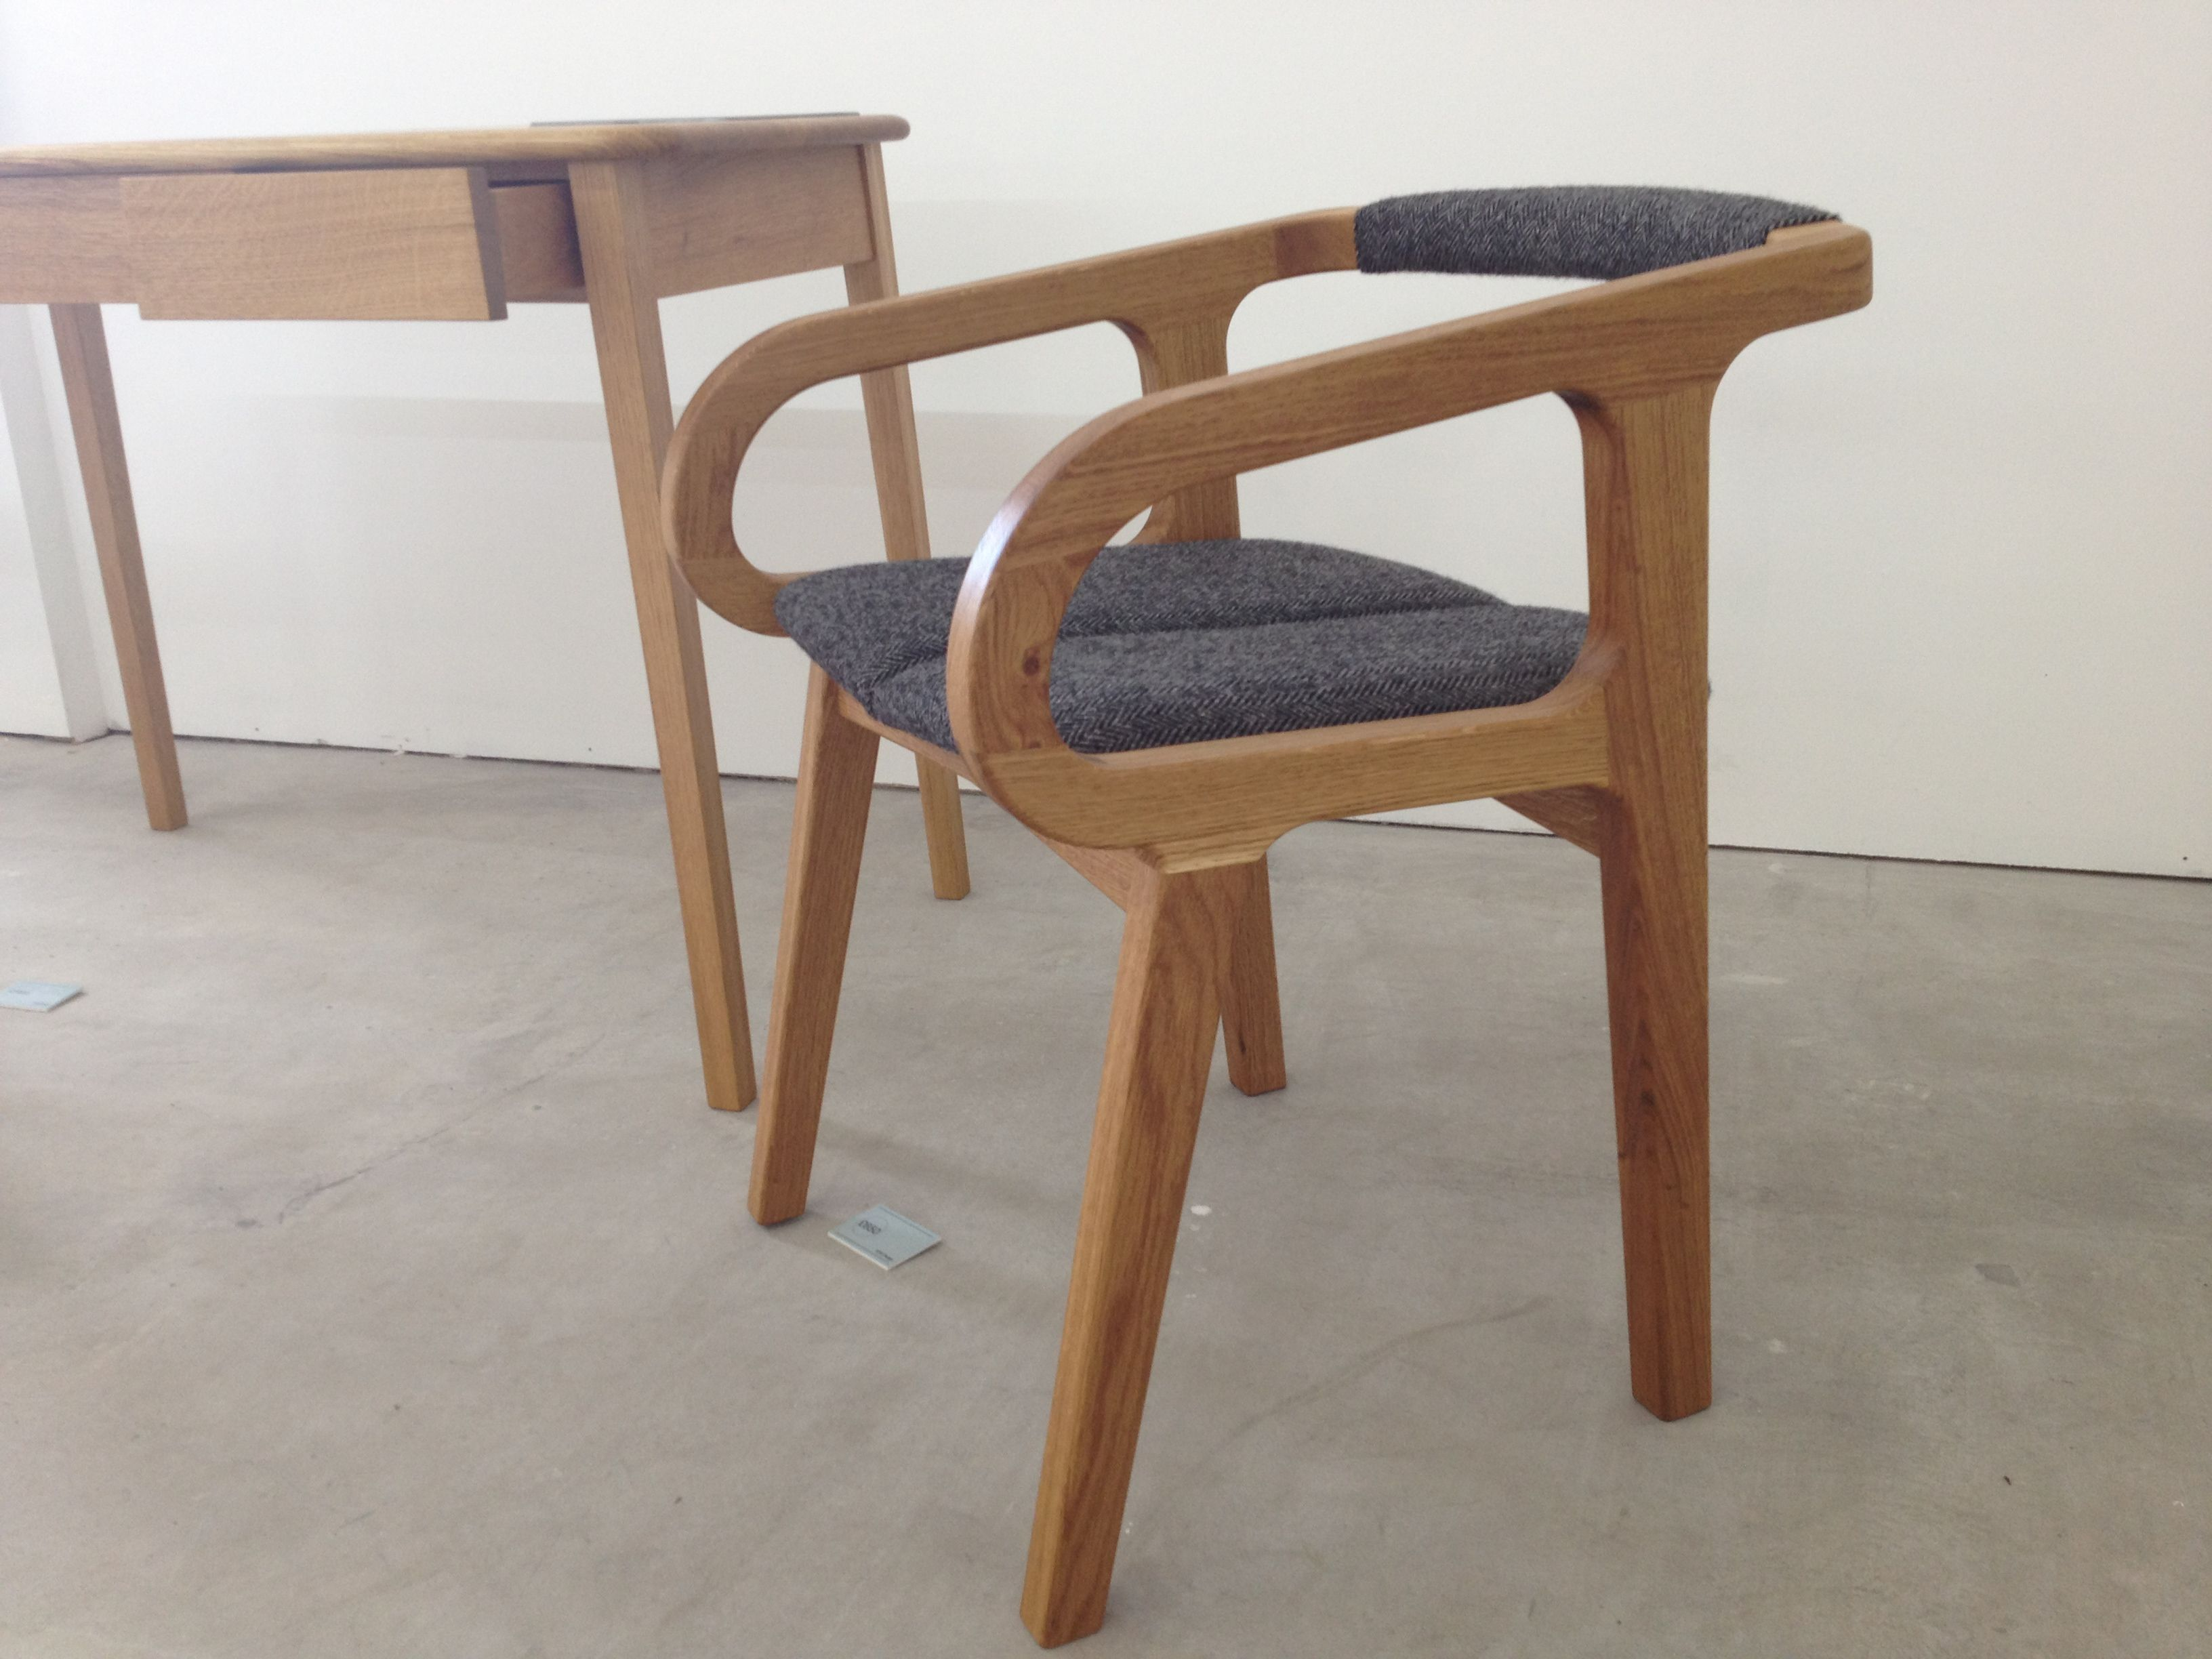 'Rchair' made in oak and upholstered in tweed by Michael